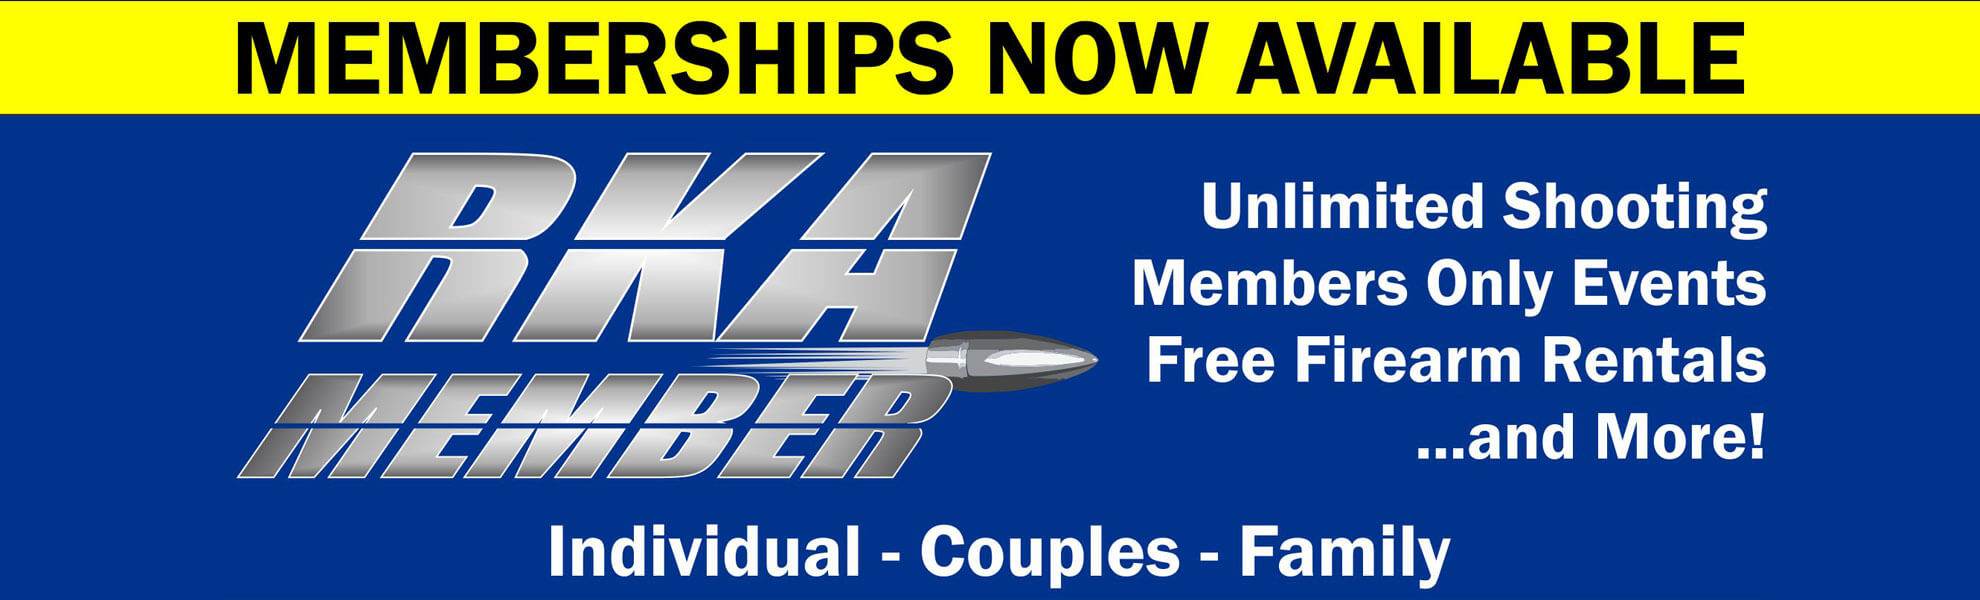 Memberships Now Available